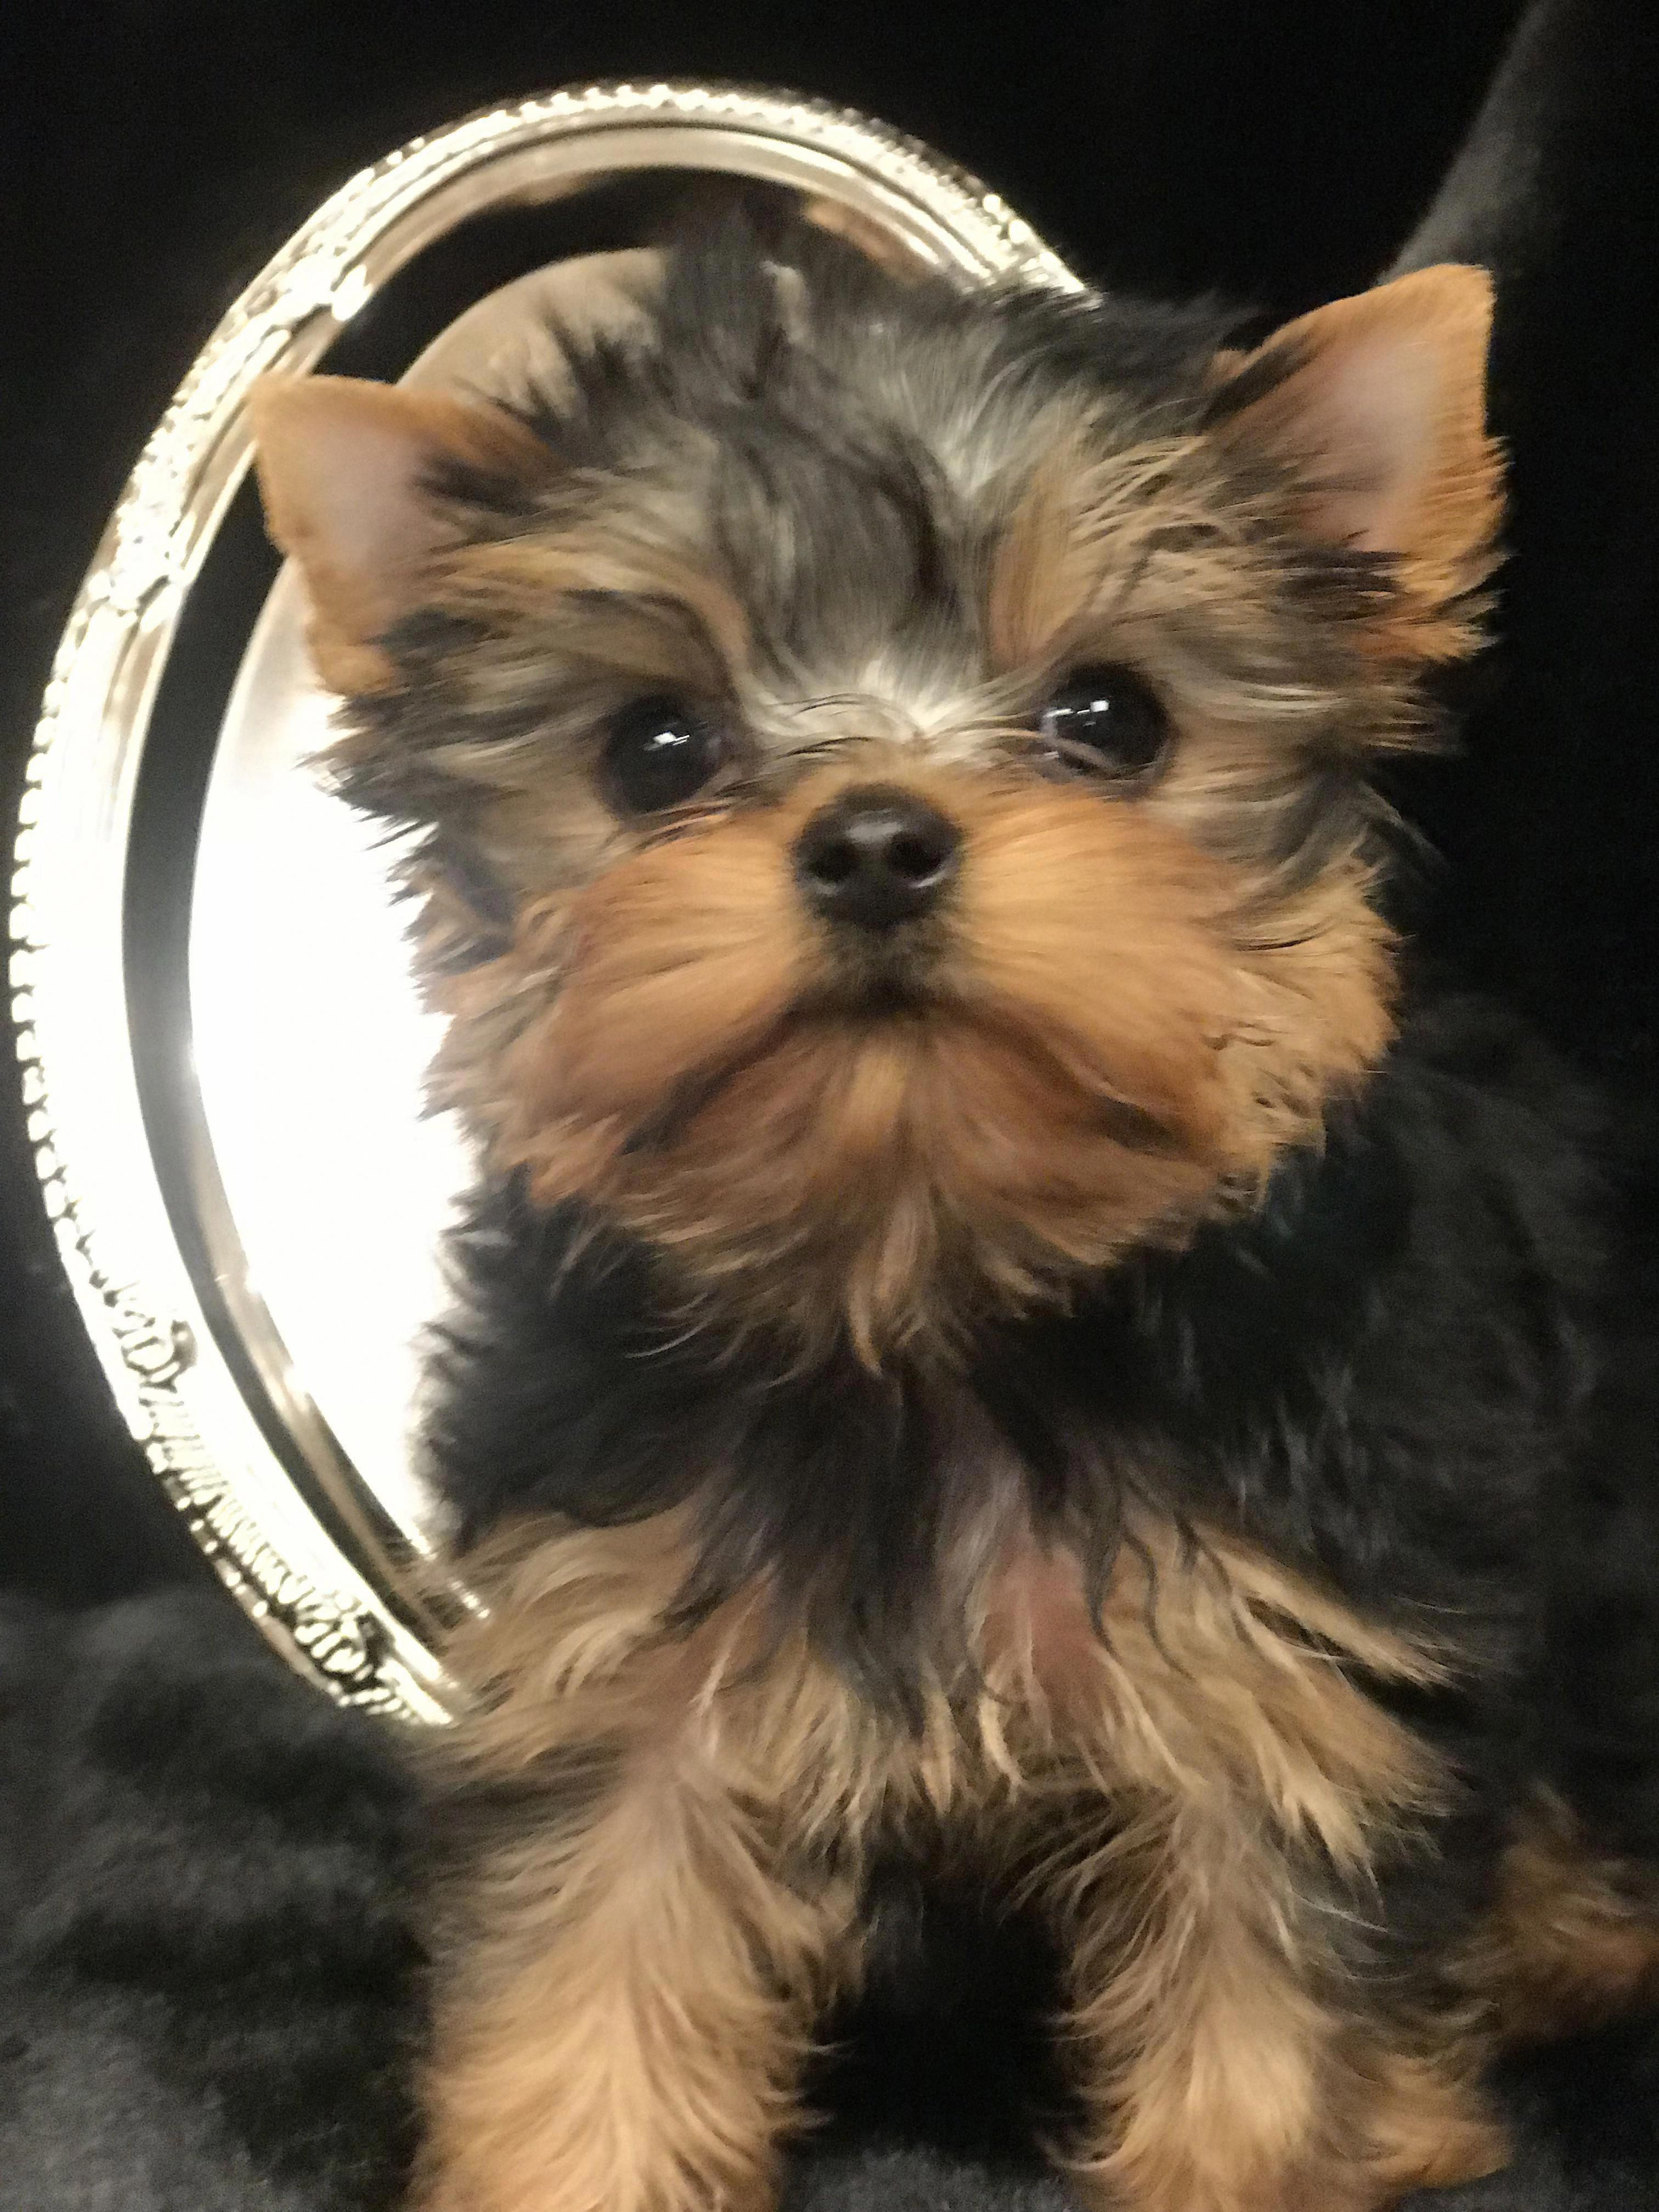 More About The Loyal Rottweiler Pup And Kids Rottweilercorner Rottweilerclub Rottweilerfunny Yorkshire Terrier Dog Yorkshire Terrier Puppies Yorkie Dogs